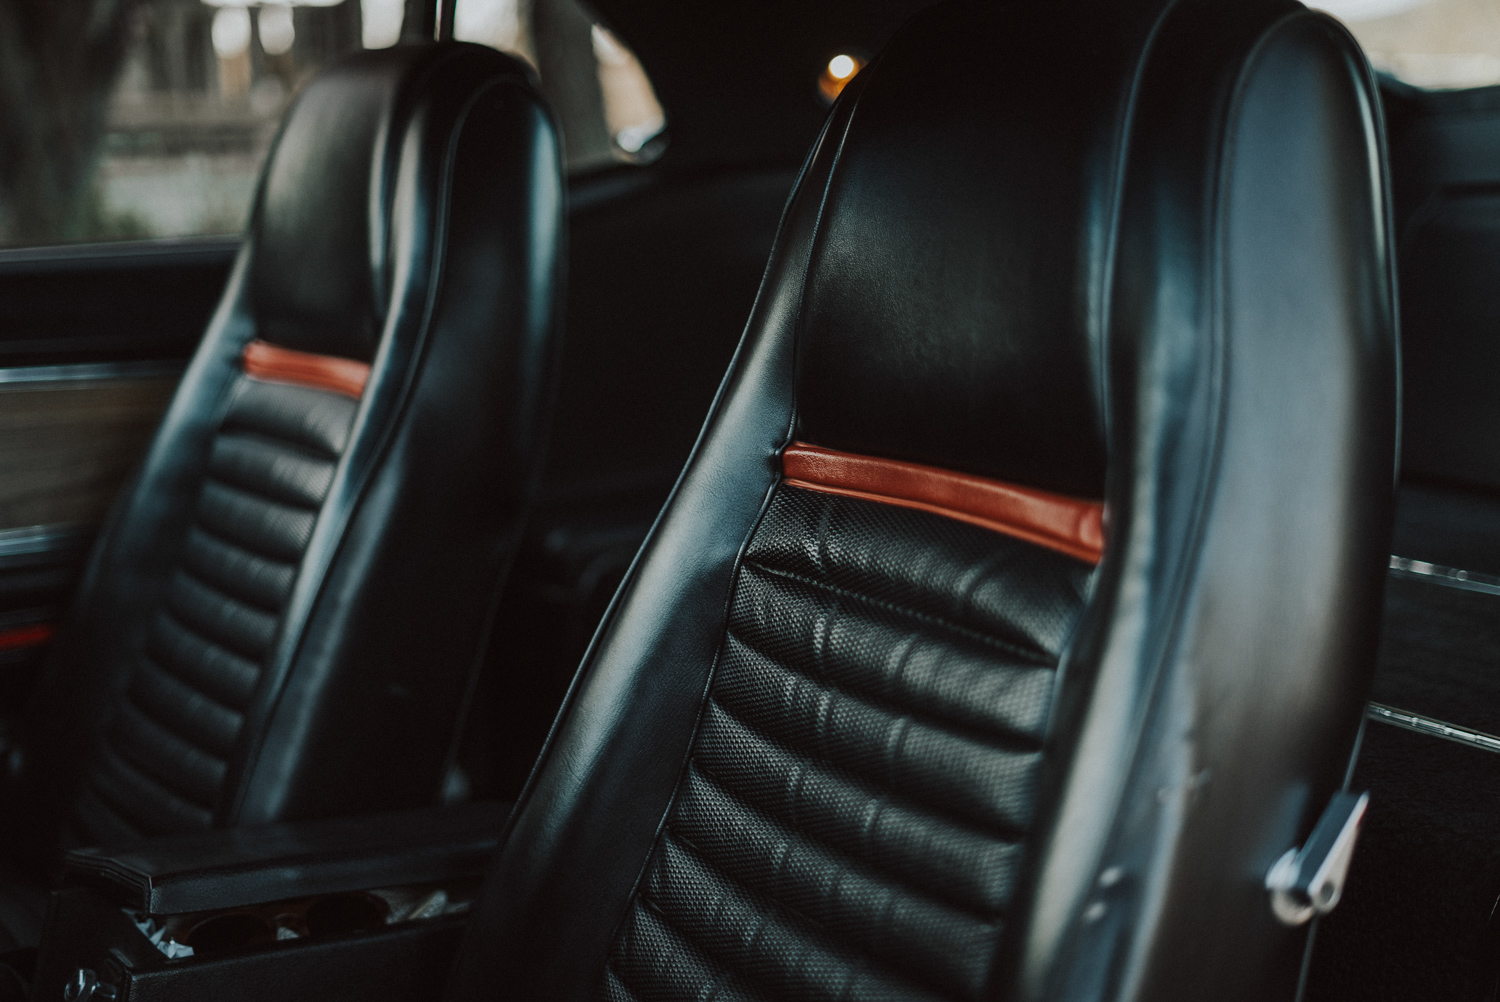 1969 Ford Mustang Mach 1 seats